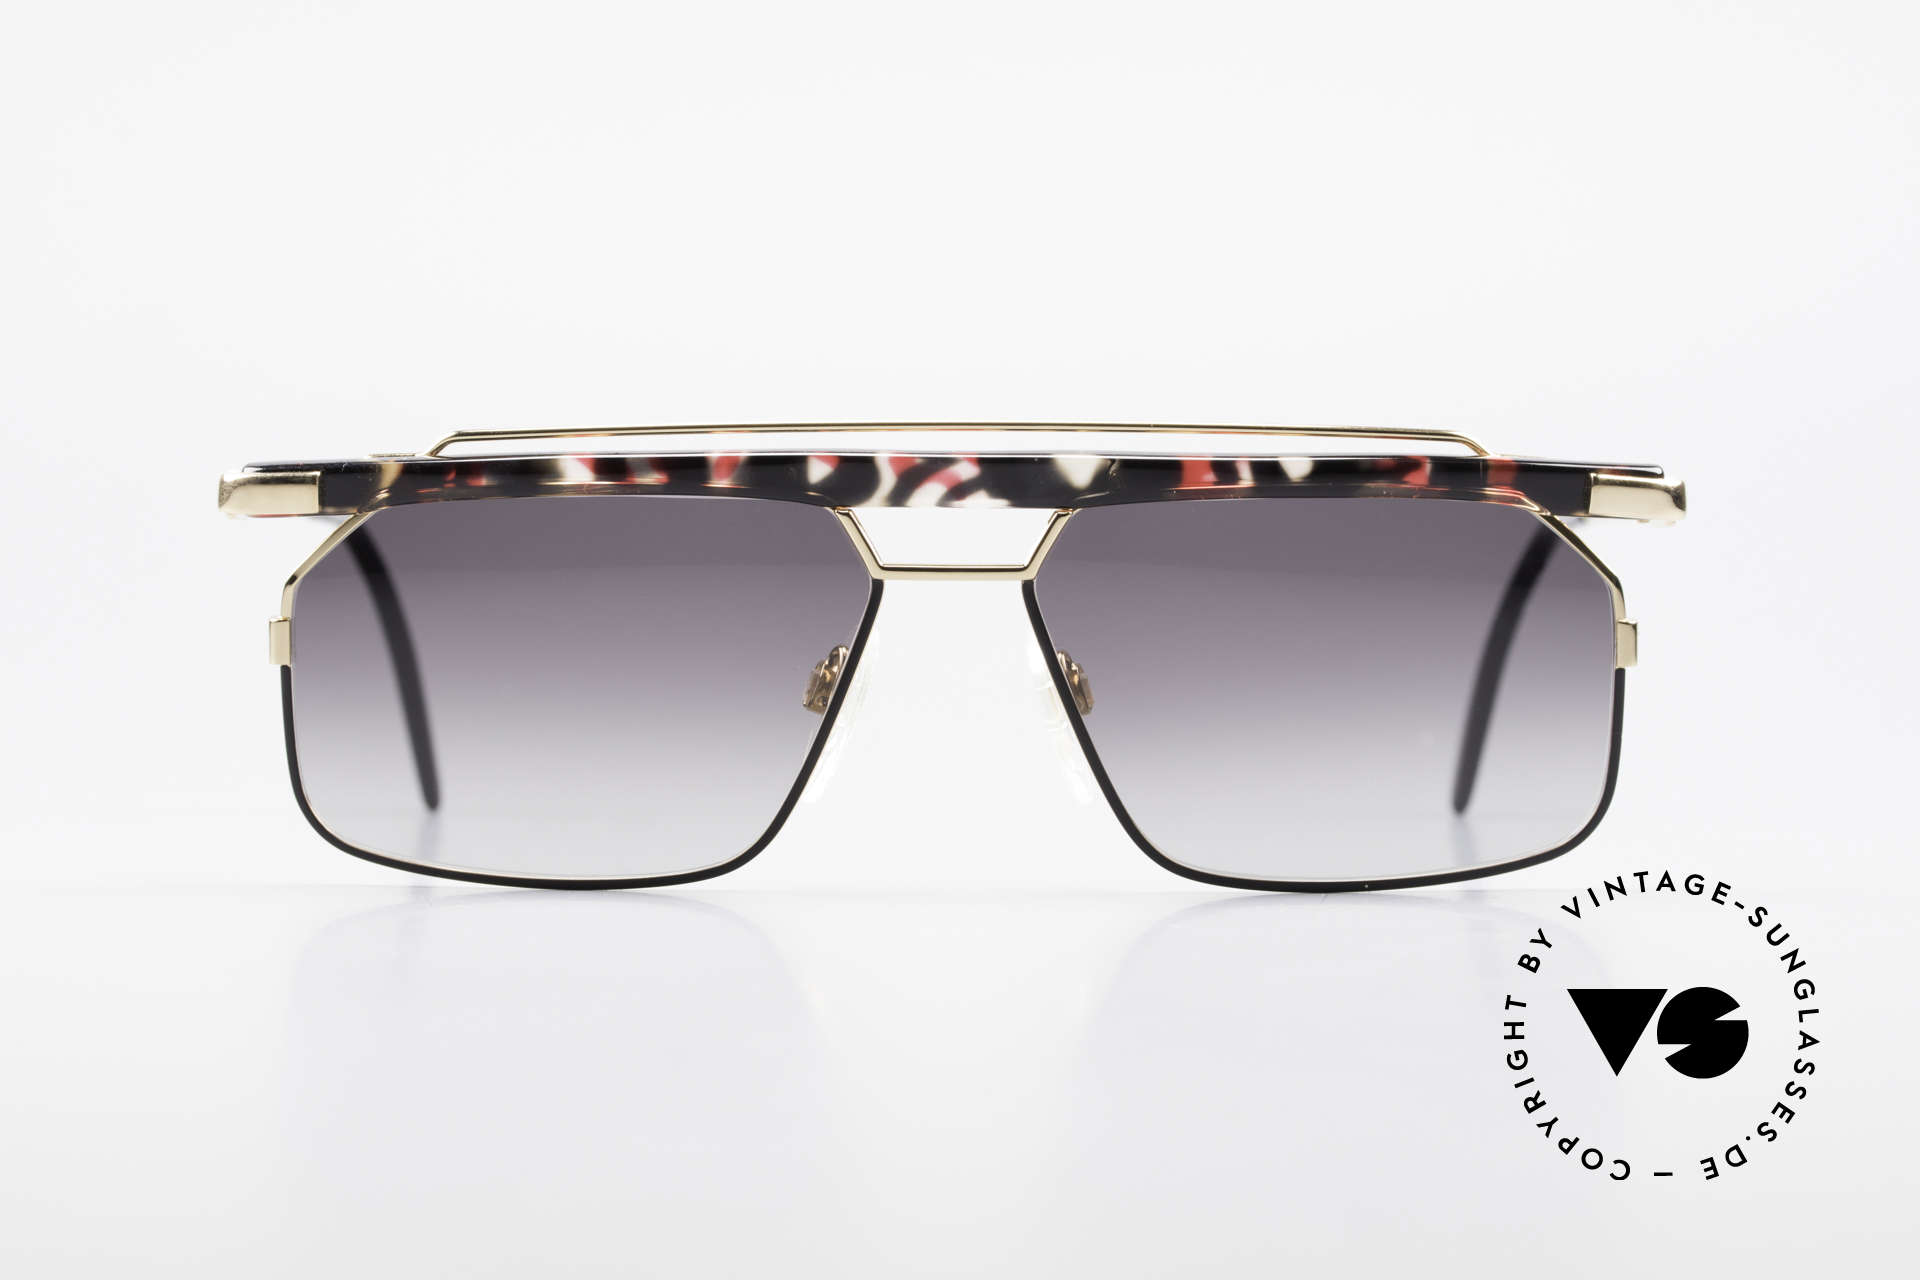 Cazal 752 Ultra Rare Vintage Sunglasses, one of the last models designed by CAri ZALloni, Made for Men